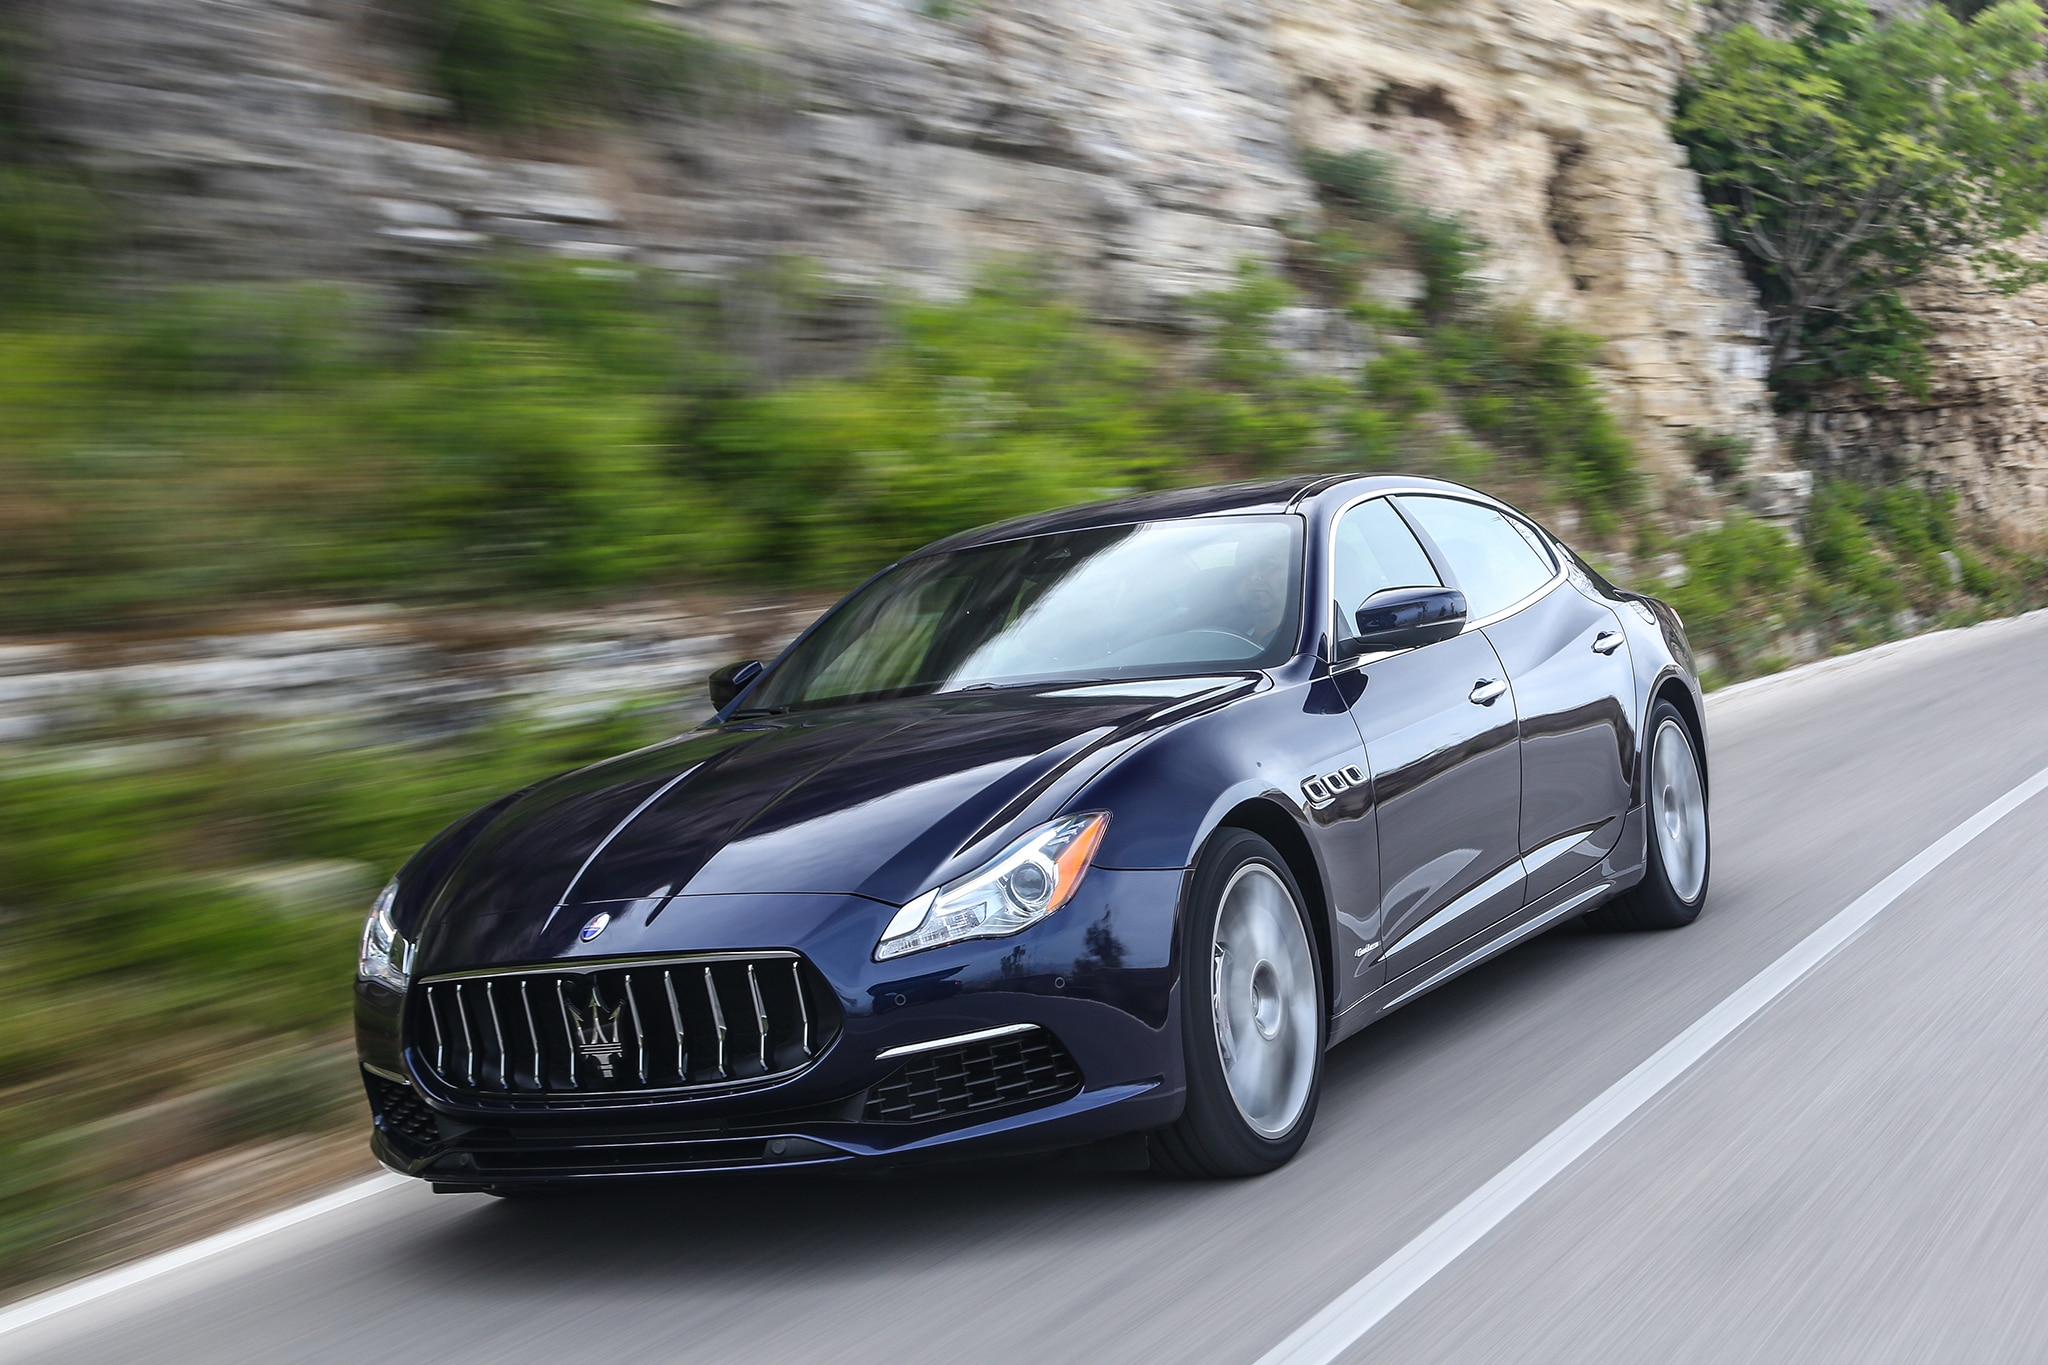 2017 Maserati Quattroporte S Q4 >> 2017 Maserati Quattroporte Review